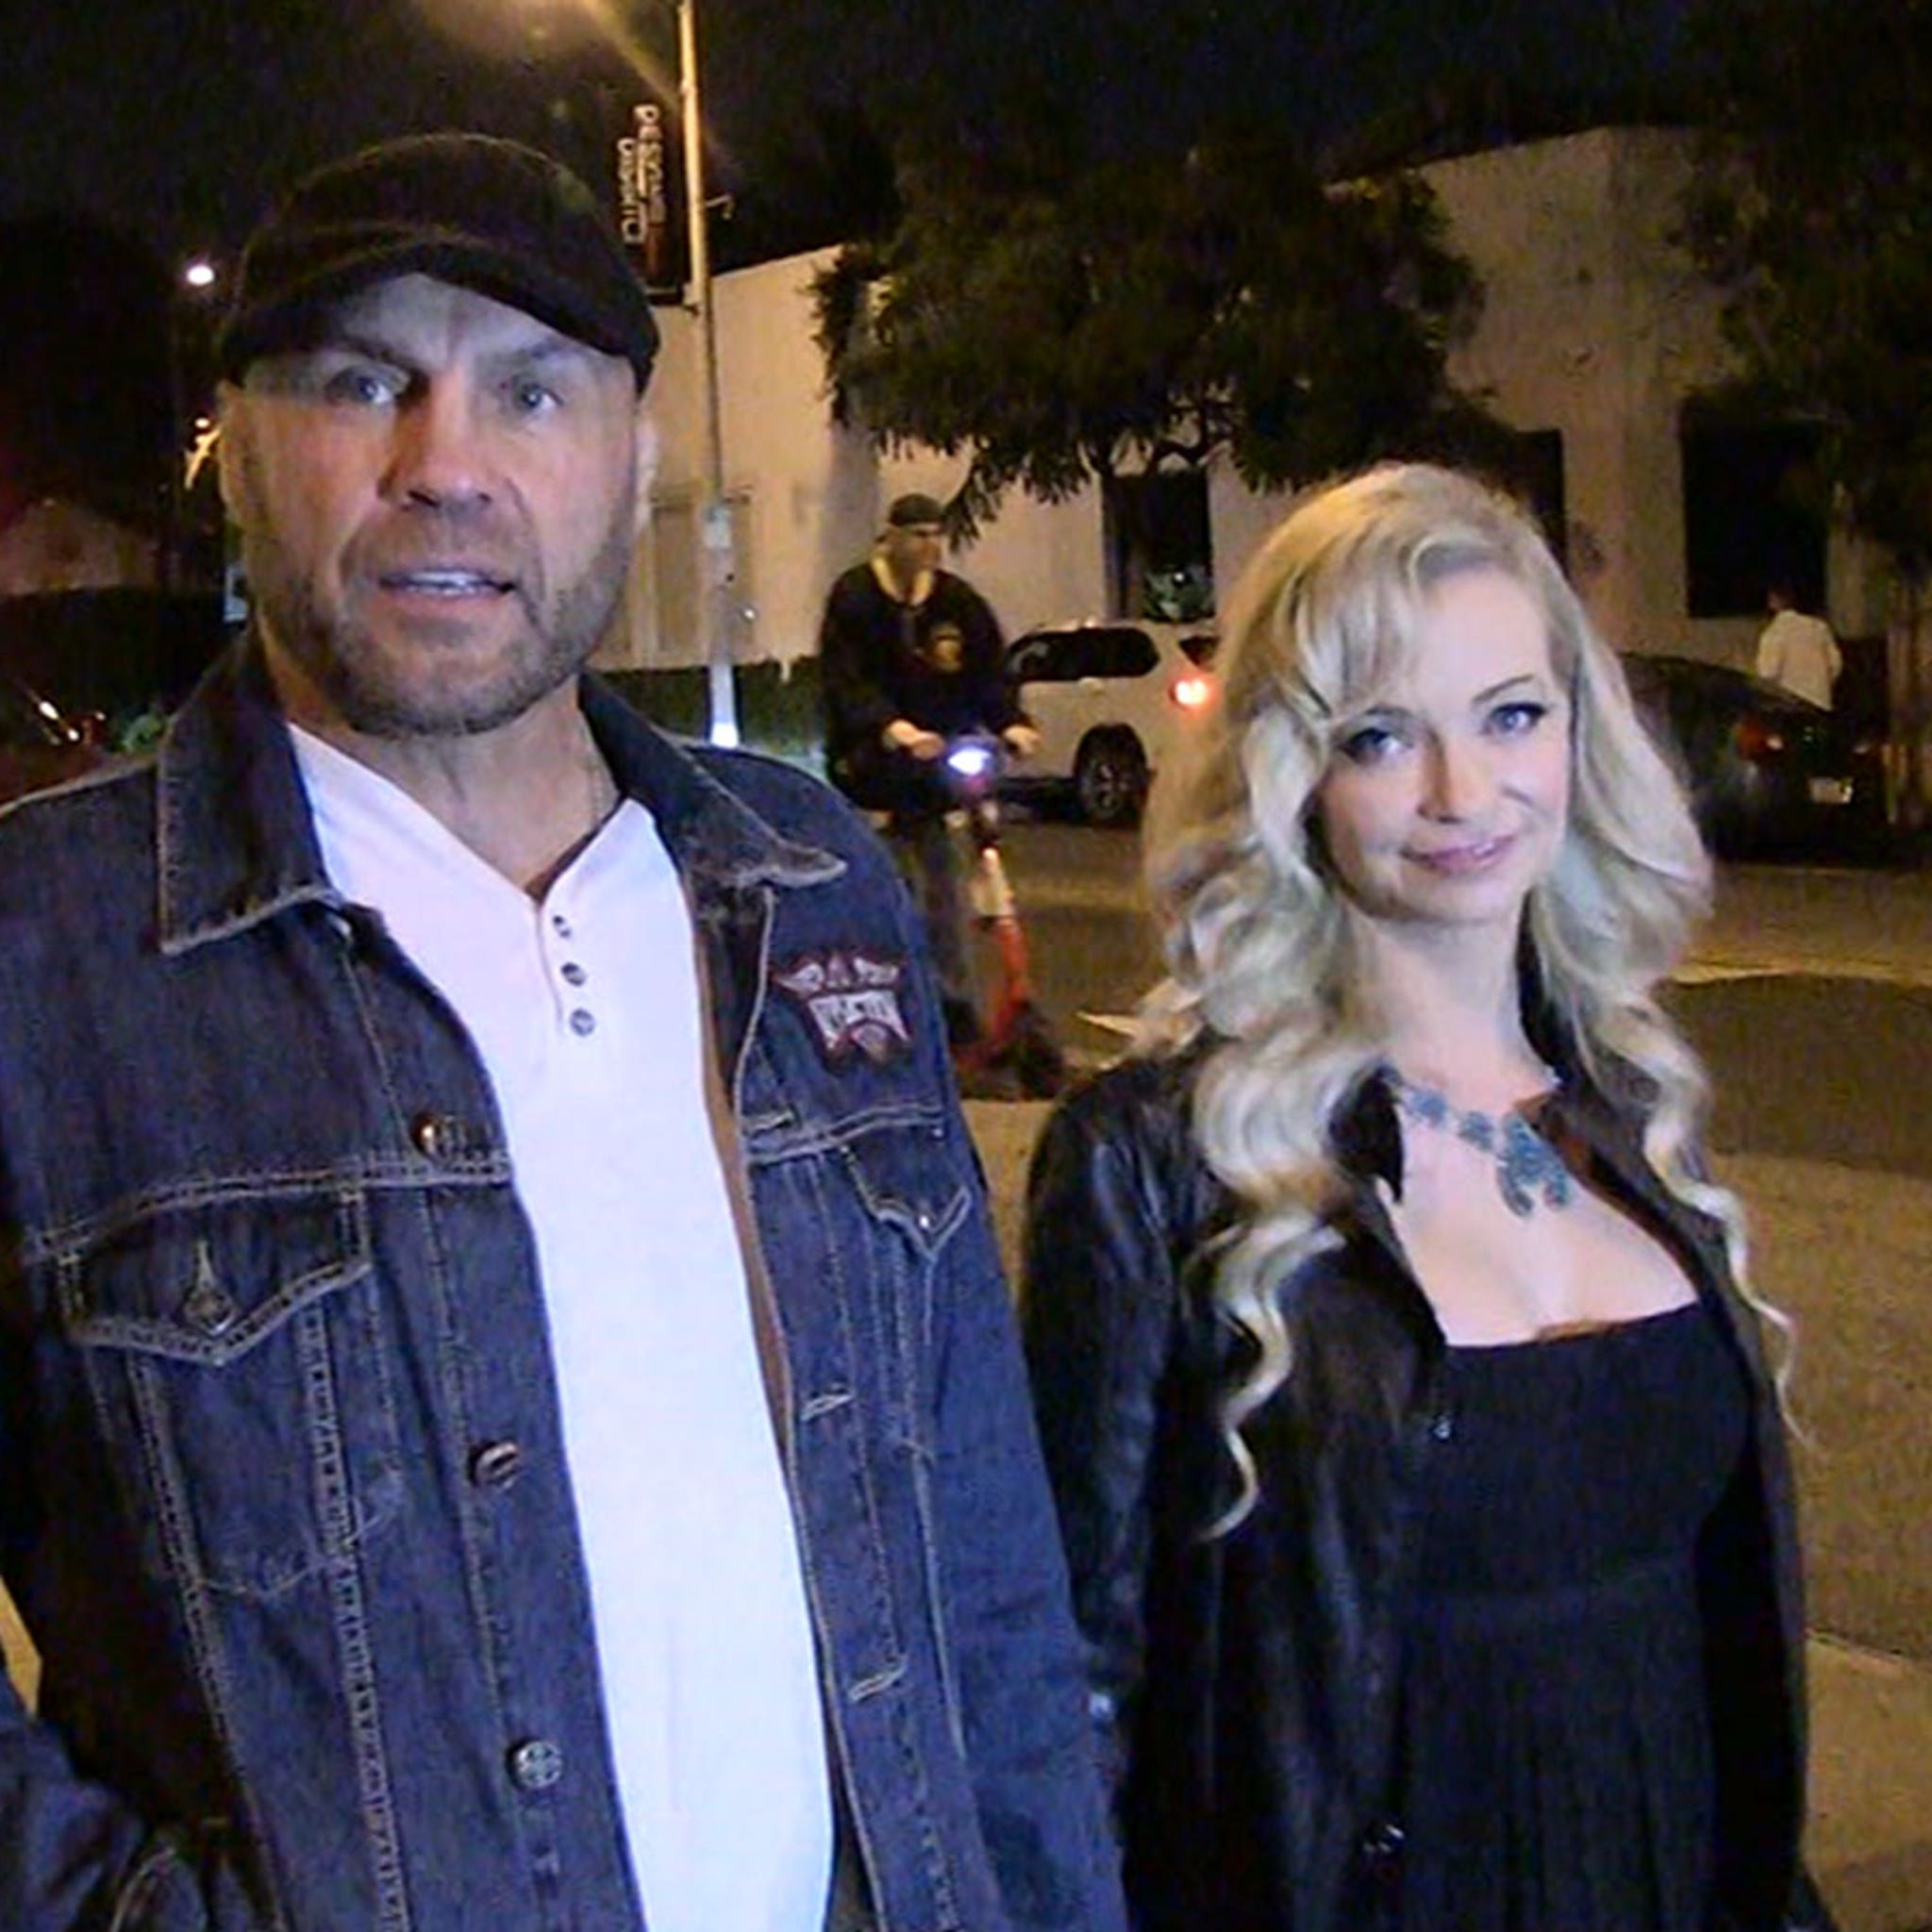 Randy Couture Returns to Hollywood After Heart Attack, 'I Feel Amazing!'